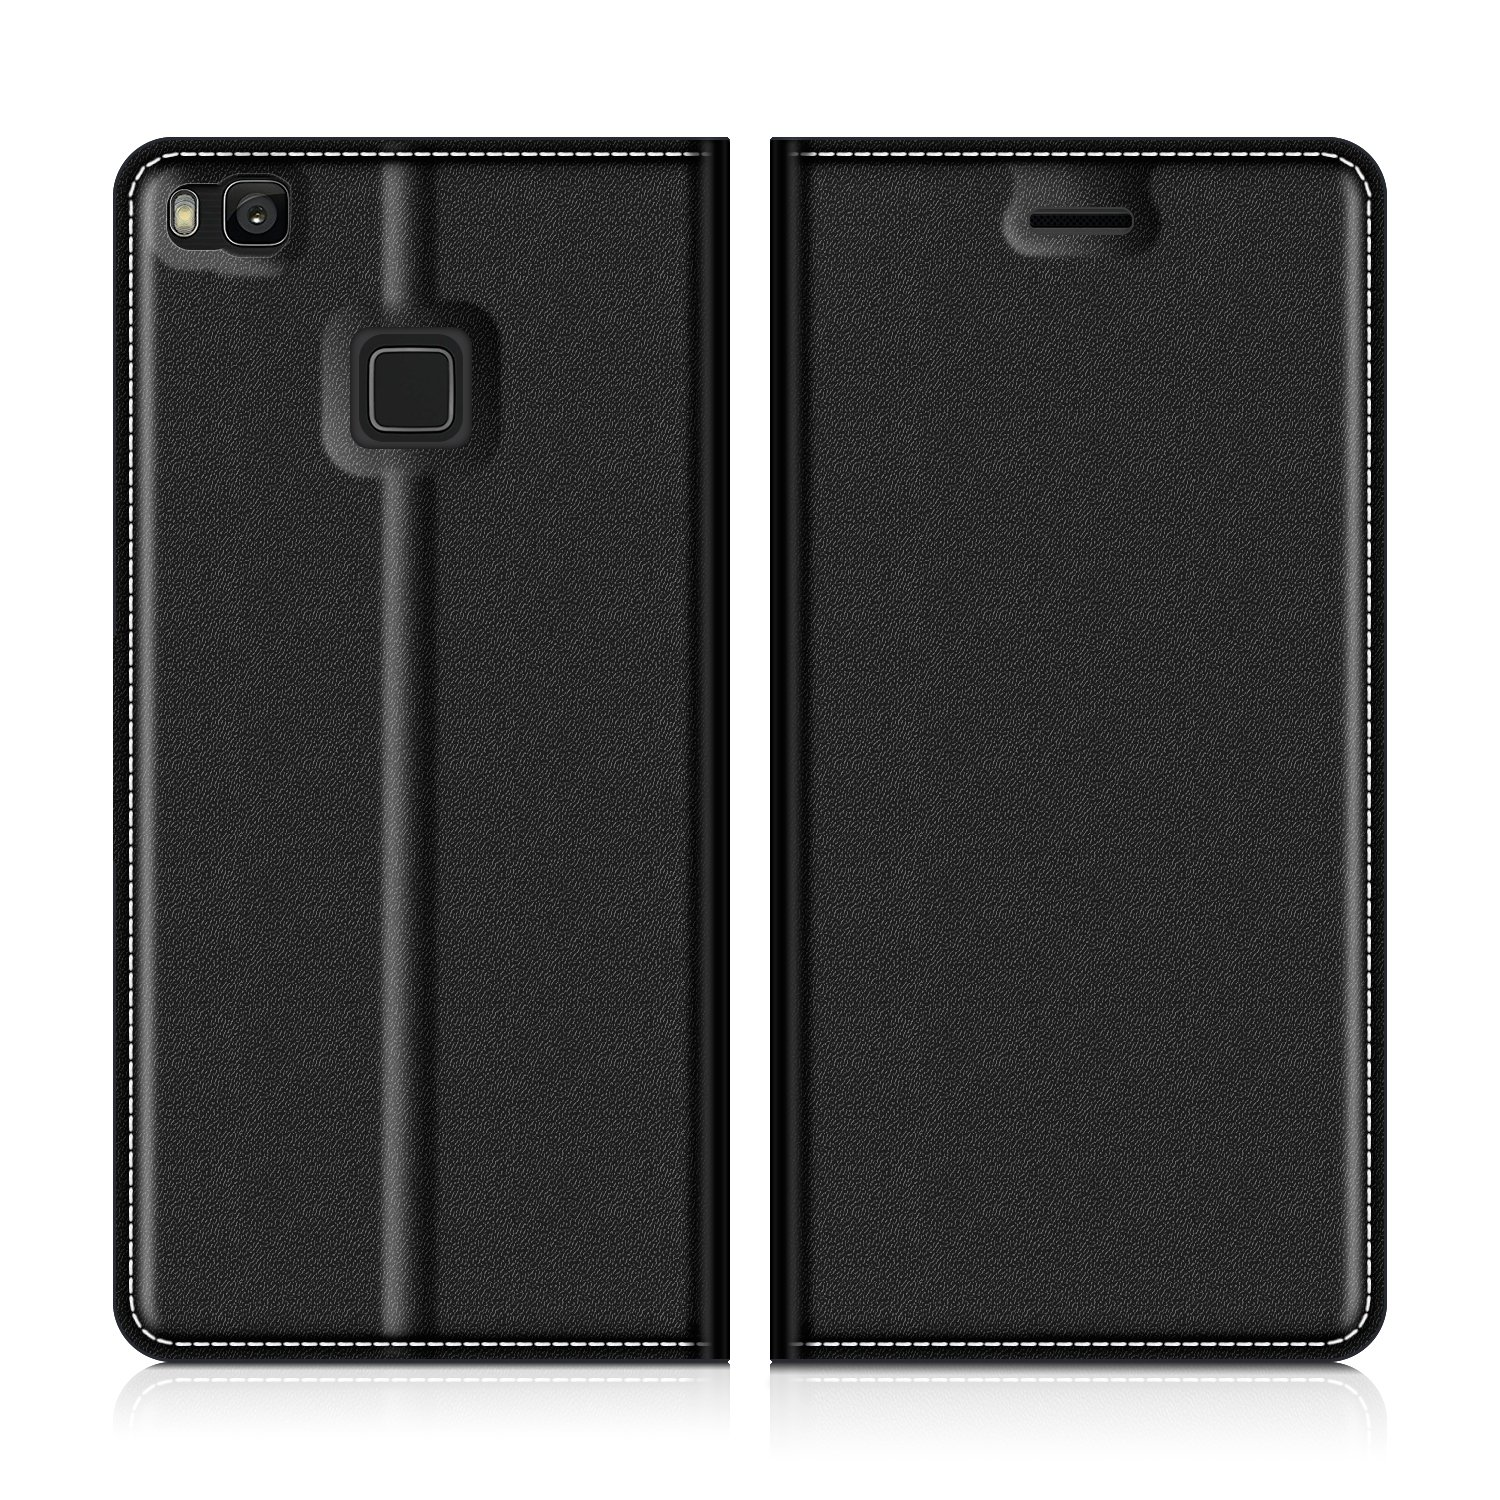 watch 0db76 6d1f5 Huawei P9 Lite Wallet Case, Mobesv Huawei P9 Lite Leather Case/Phone Flip  Book Cover/Viewing Stand/Card Holder for Huawei P9 Lite, Black